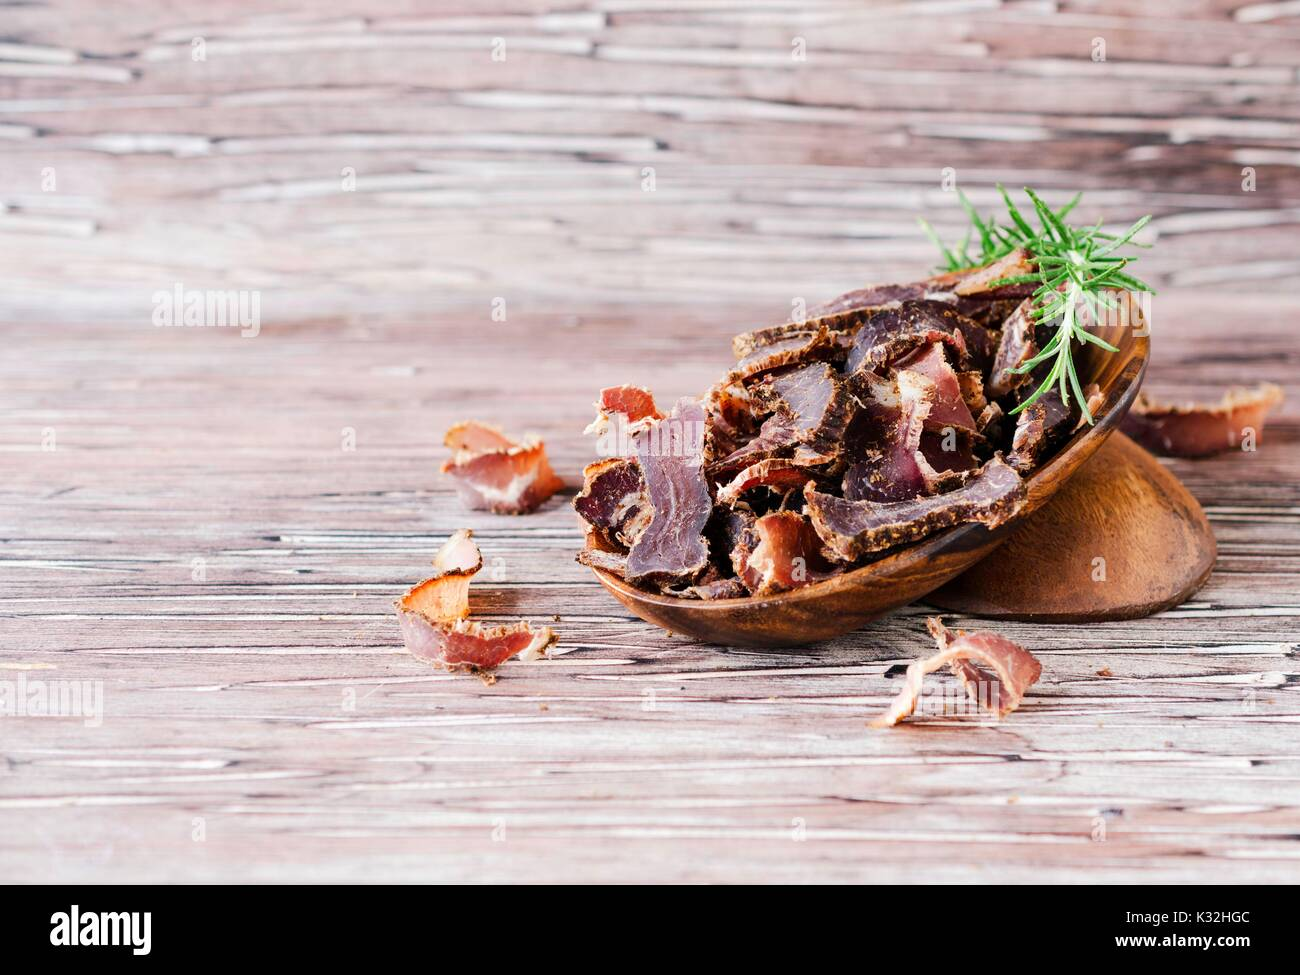 jerked meat, cow, deer, wild beast or biltong in wooden bowls on a rustic table, selective focus - Stock Image